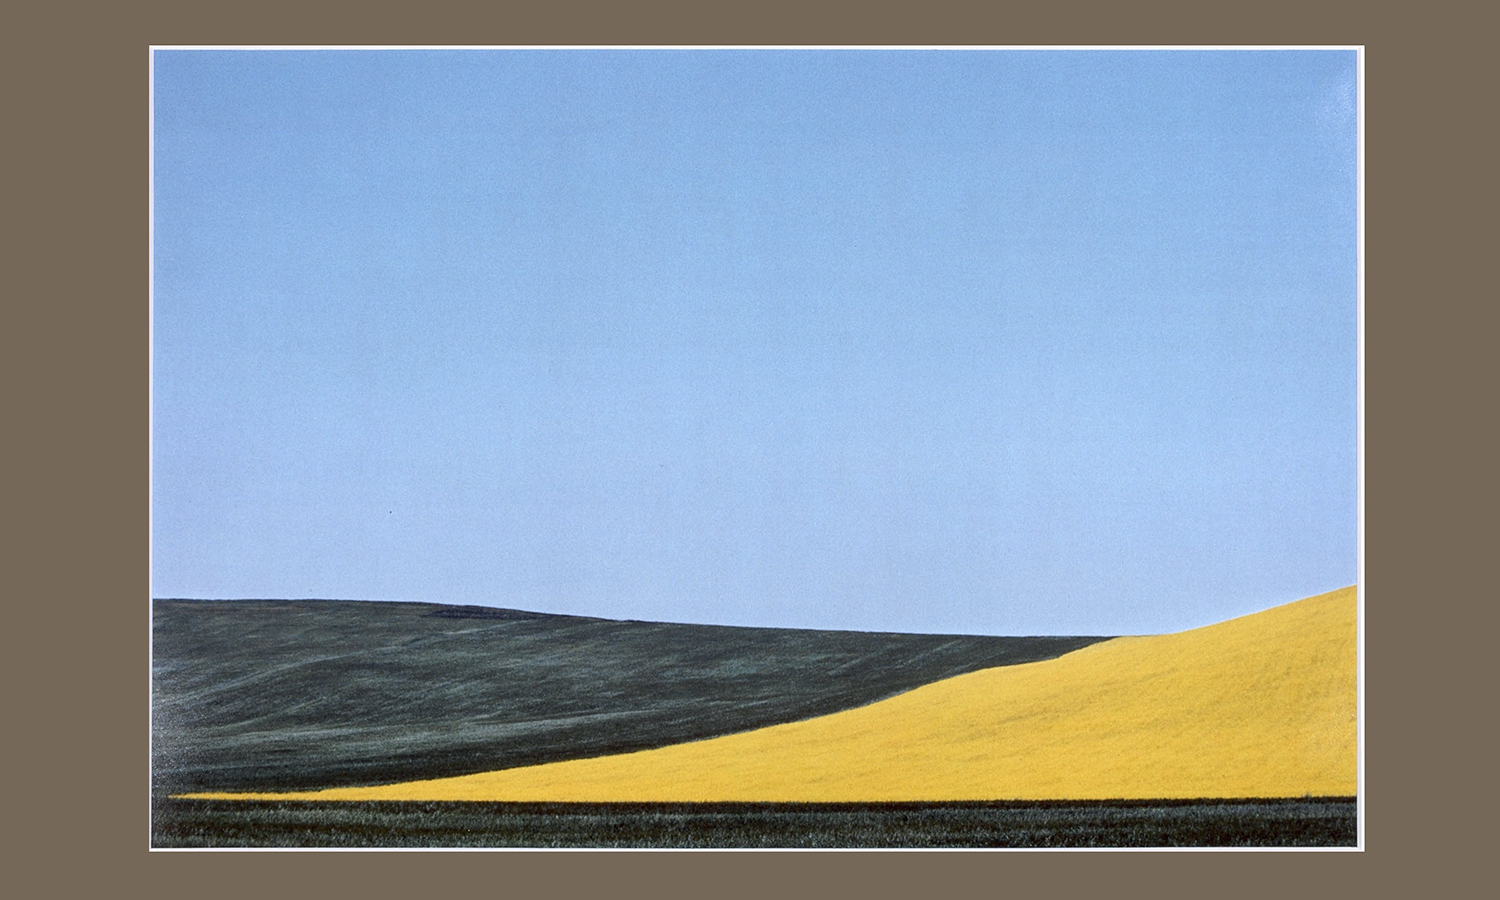 Franco Fontana (b.1933, Italy) Paesaggio,Lucanio II. 1973. Color Nature Landscapes II.Cibachrome, 51 x 61 cm. Gift of Mr. and Mrs.Chester J. Straub p'87 (Christopher Straub)